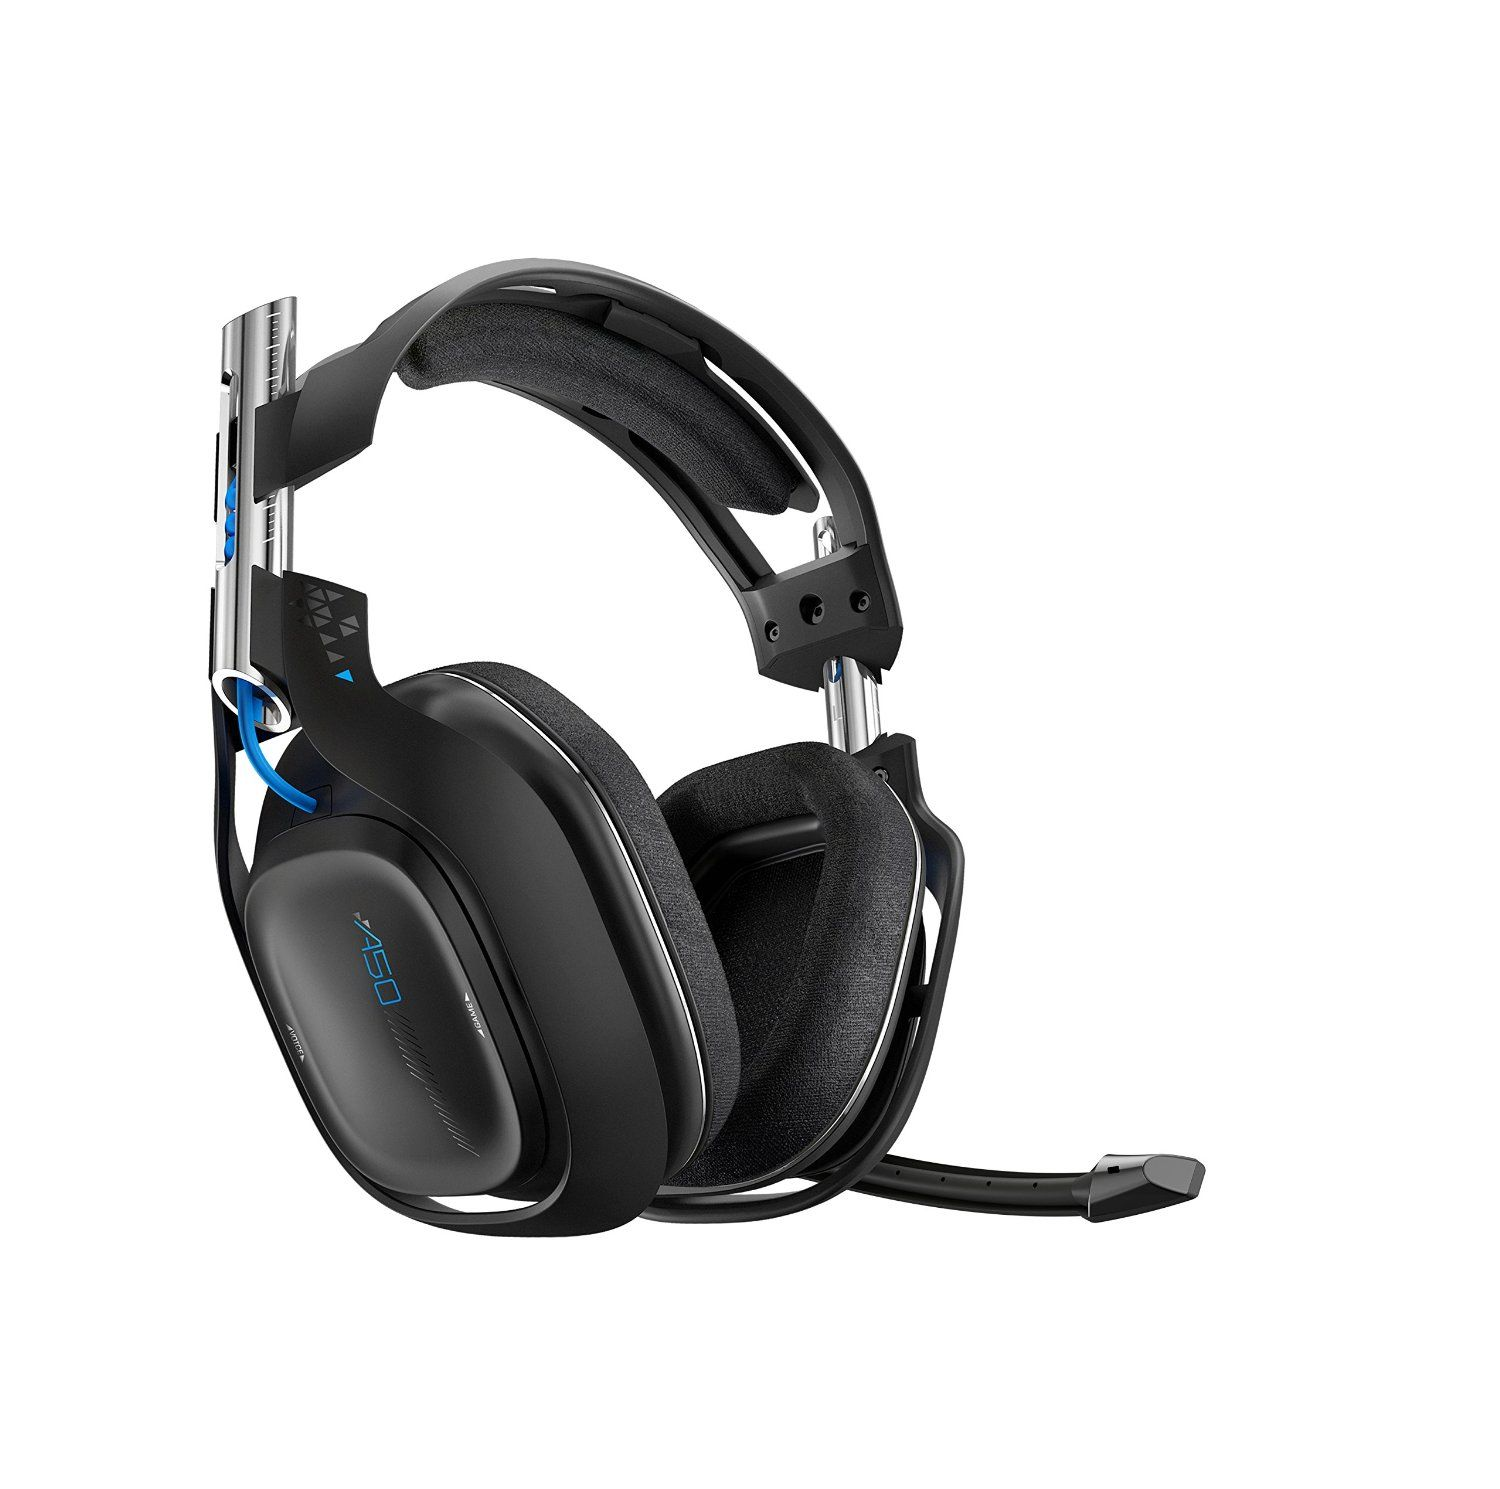 Gaming headset best gaming headset xbox headset